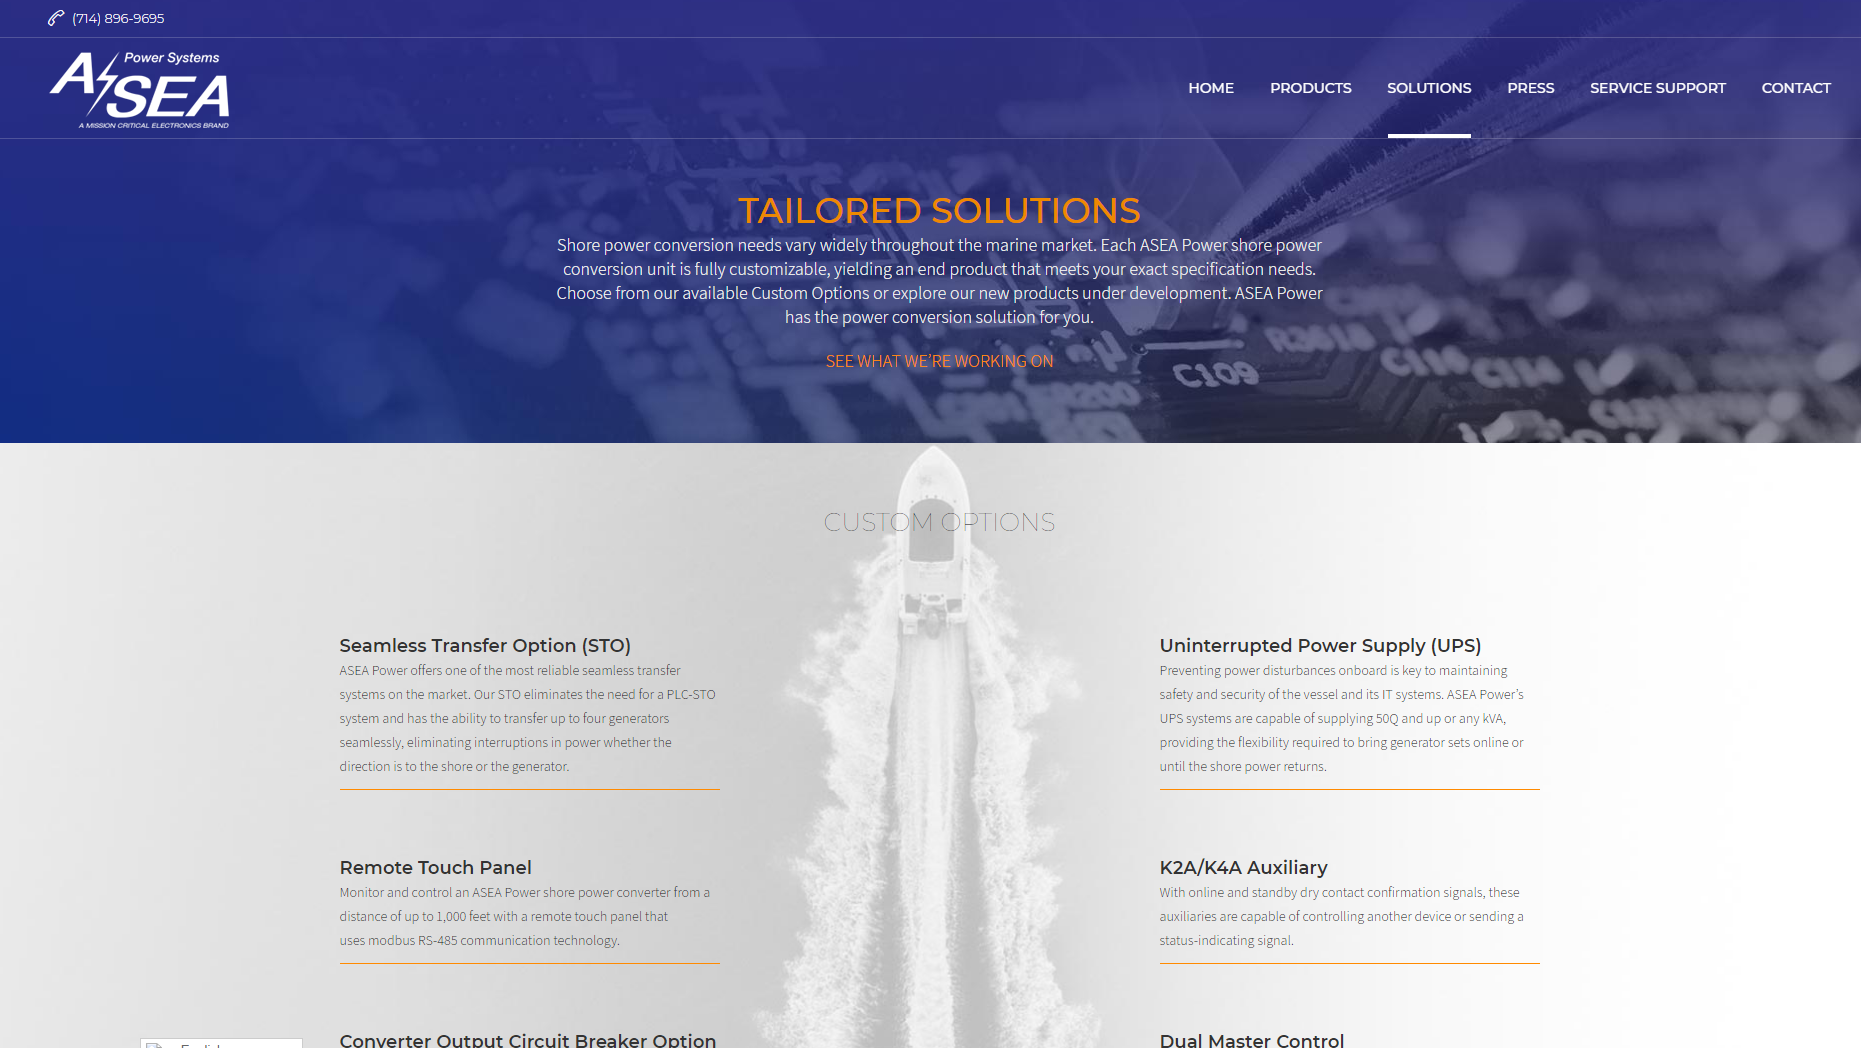 ASEA POWER SYSTEMS LAUNCHES NEW MULTILINGUAL WEBSITE